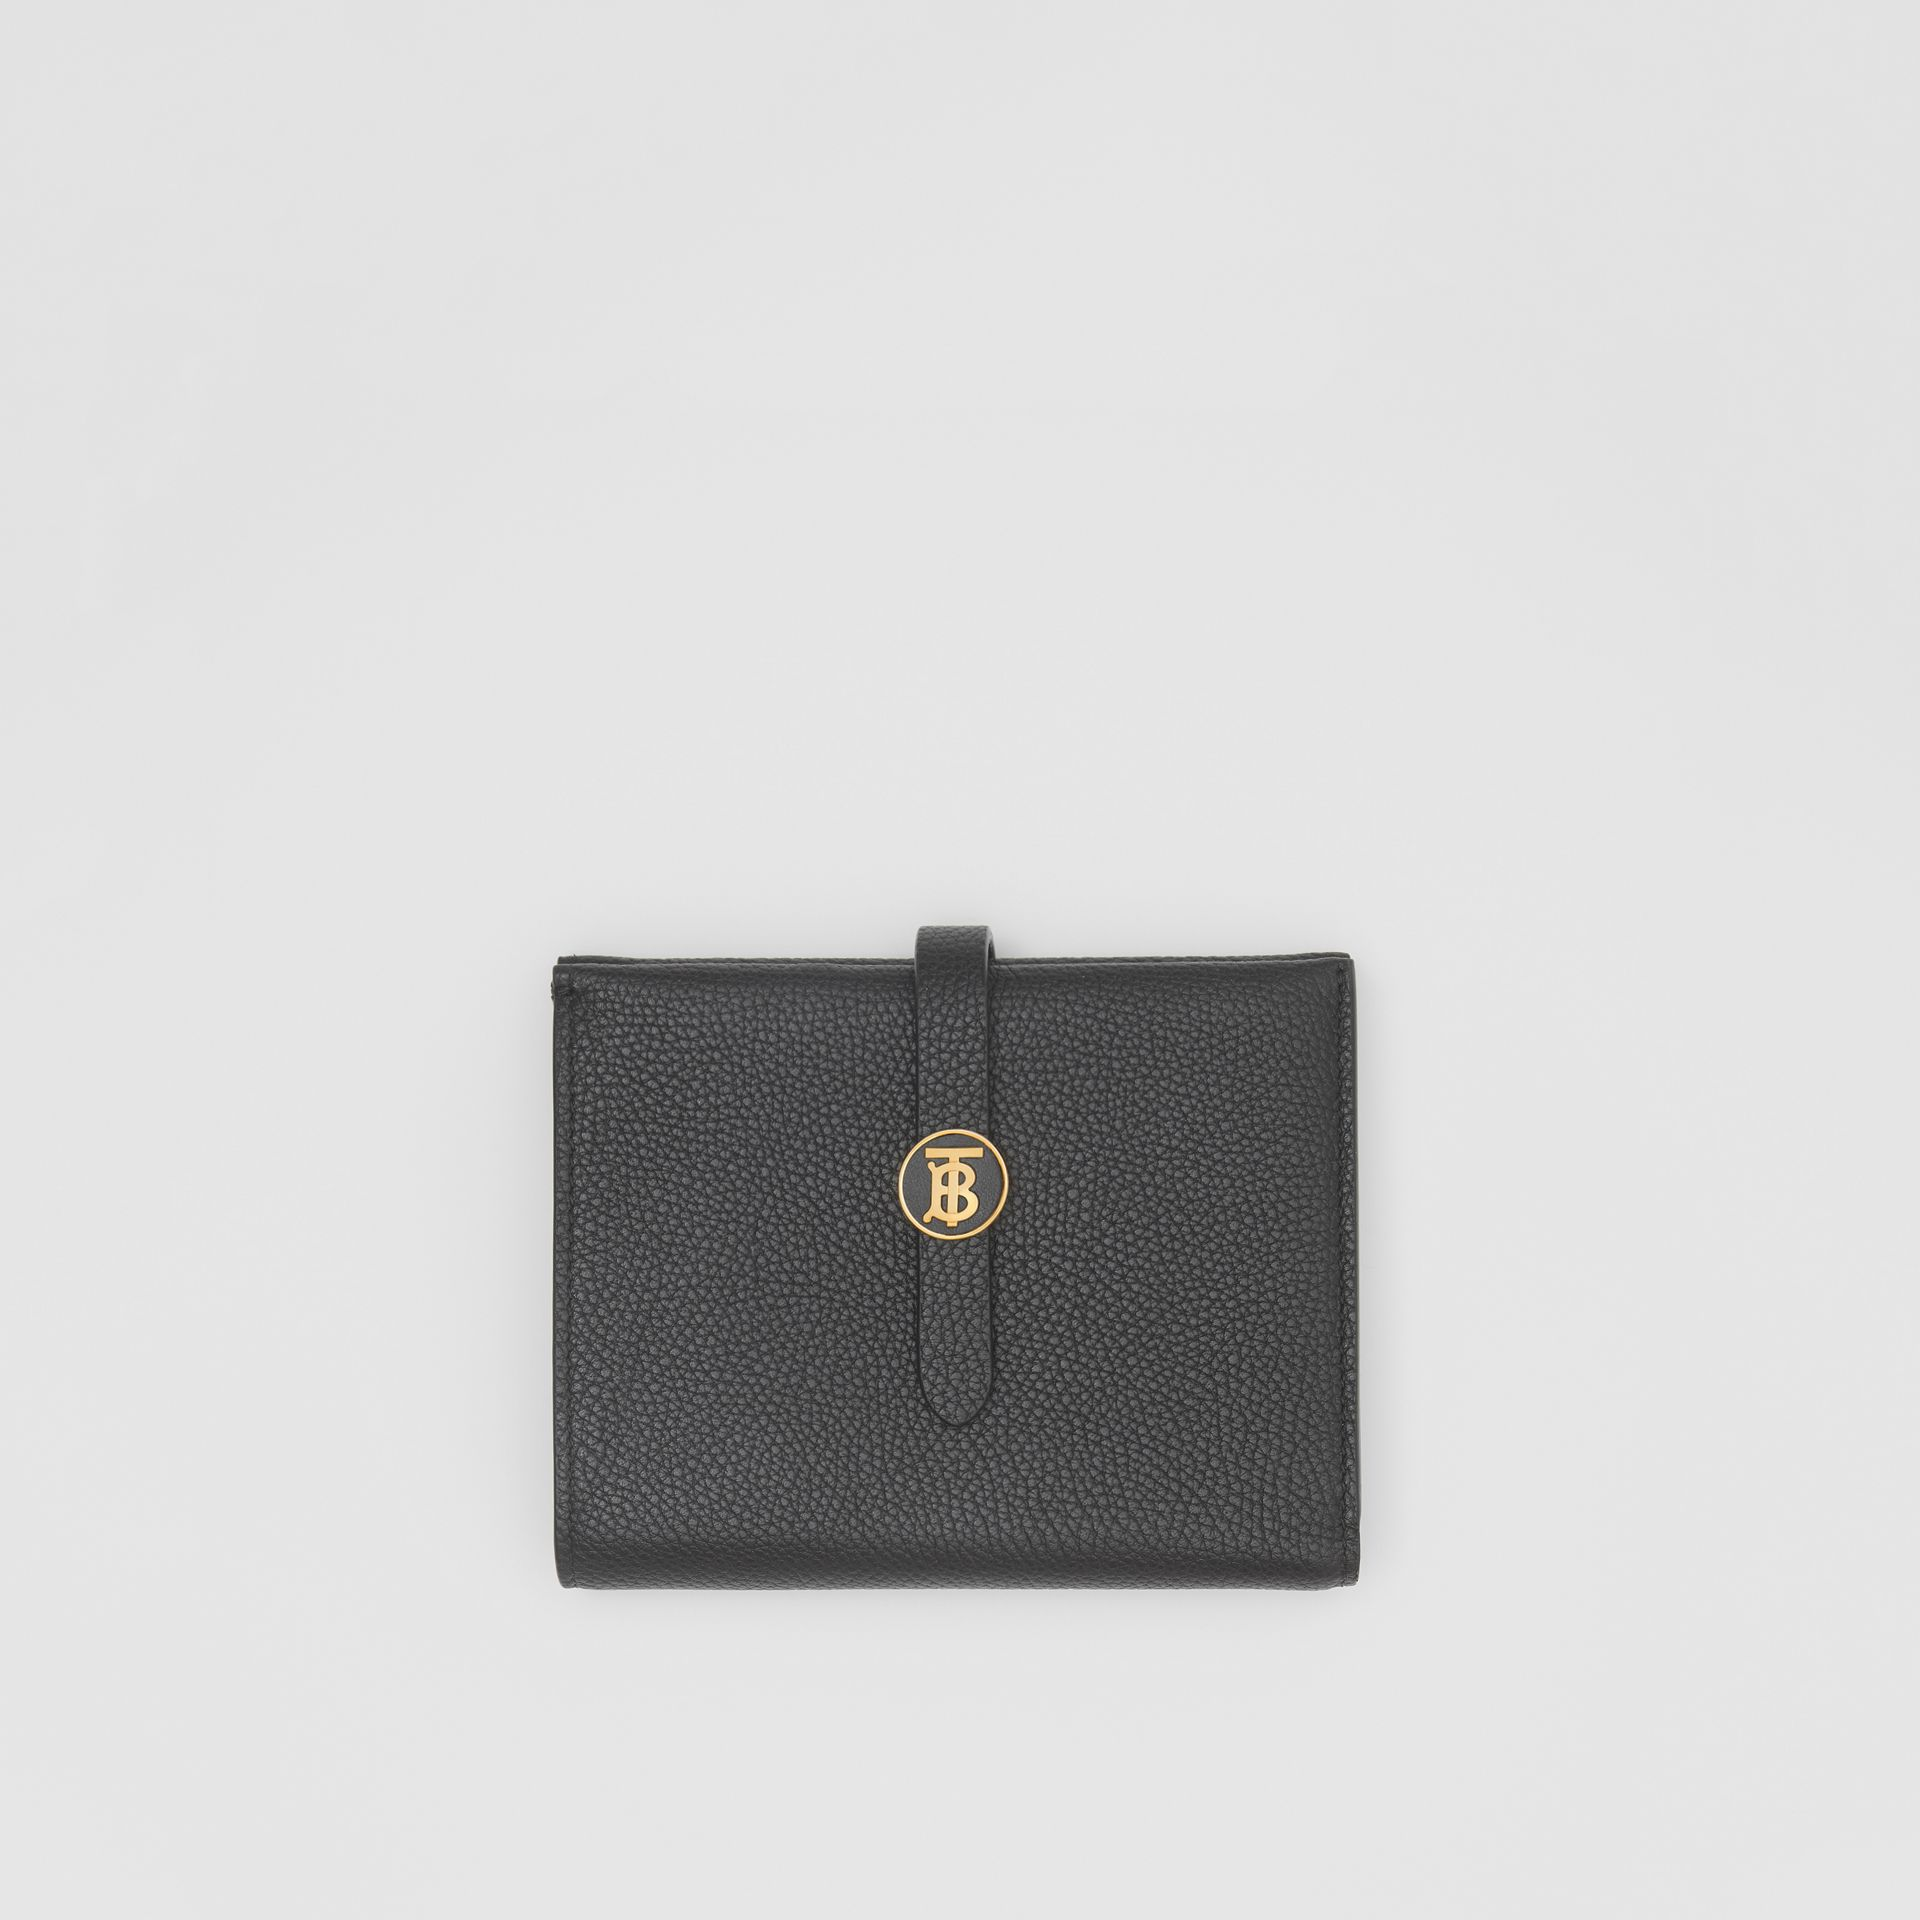 Monogram Motif Grainy Leather Folding Wallet in Black - Women | Burberry United Kingdom - gallery image 0